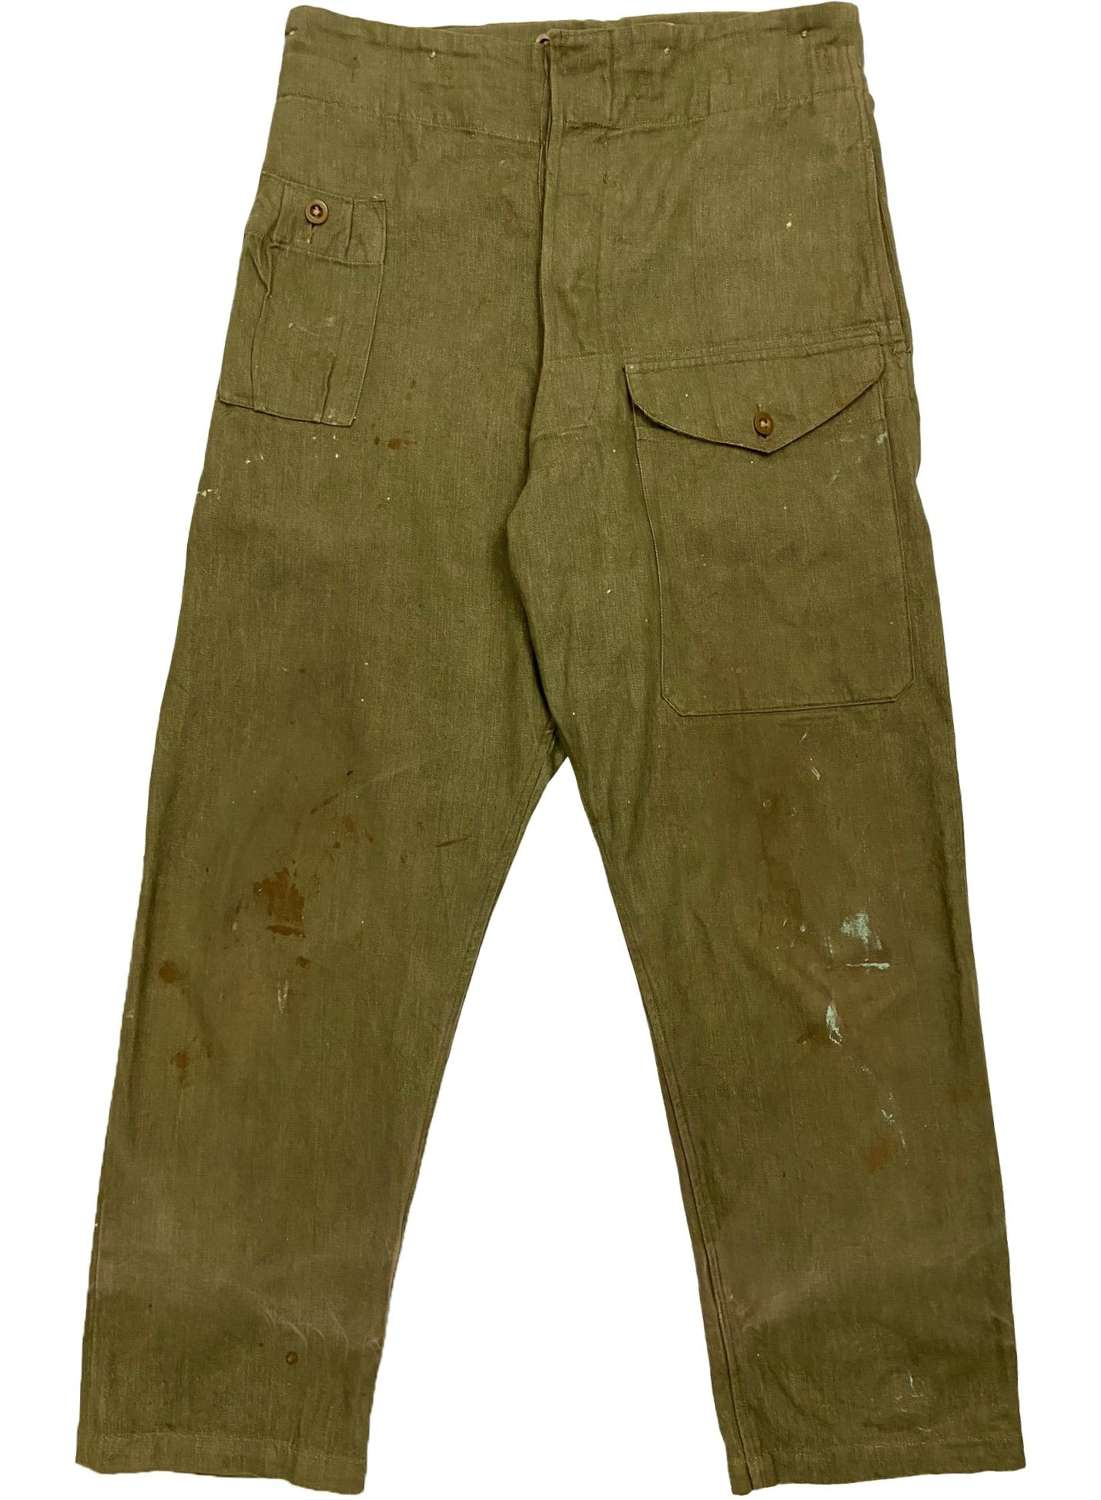 Original 1954 Dated British Army Denim Battledress Trousers - Size 6